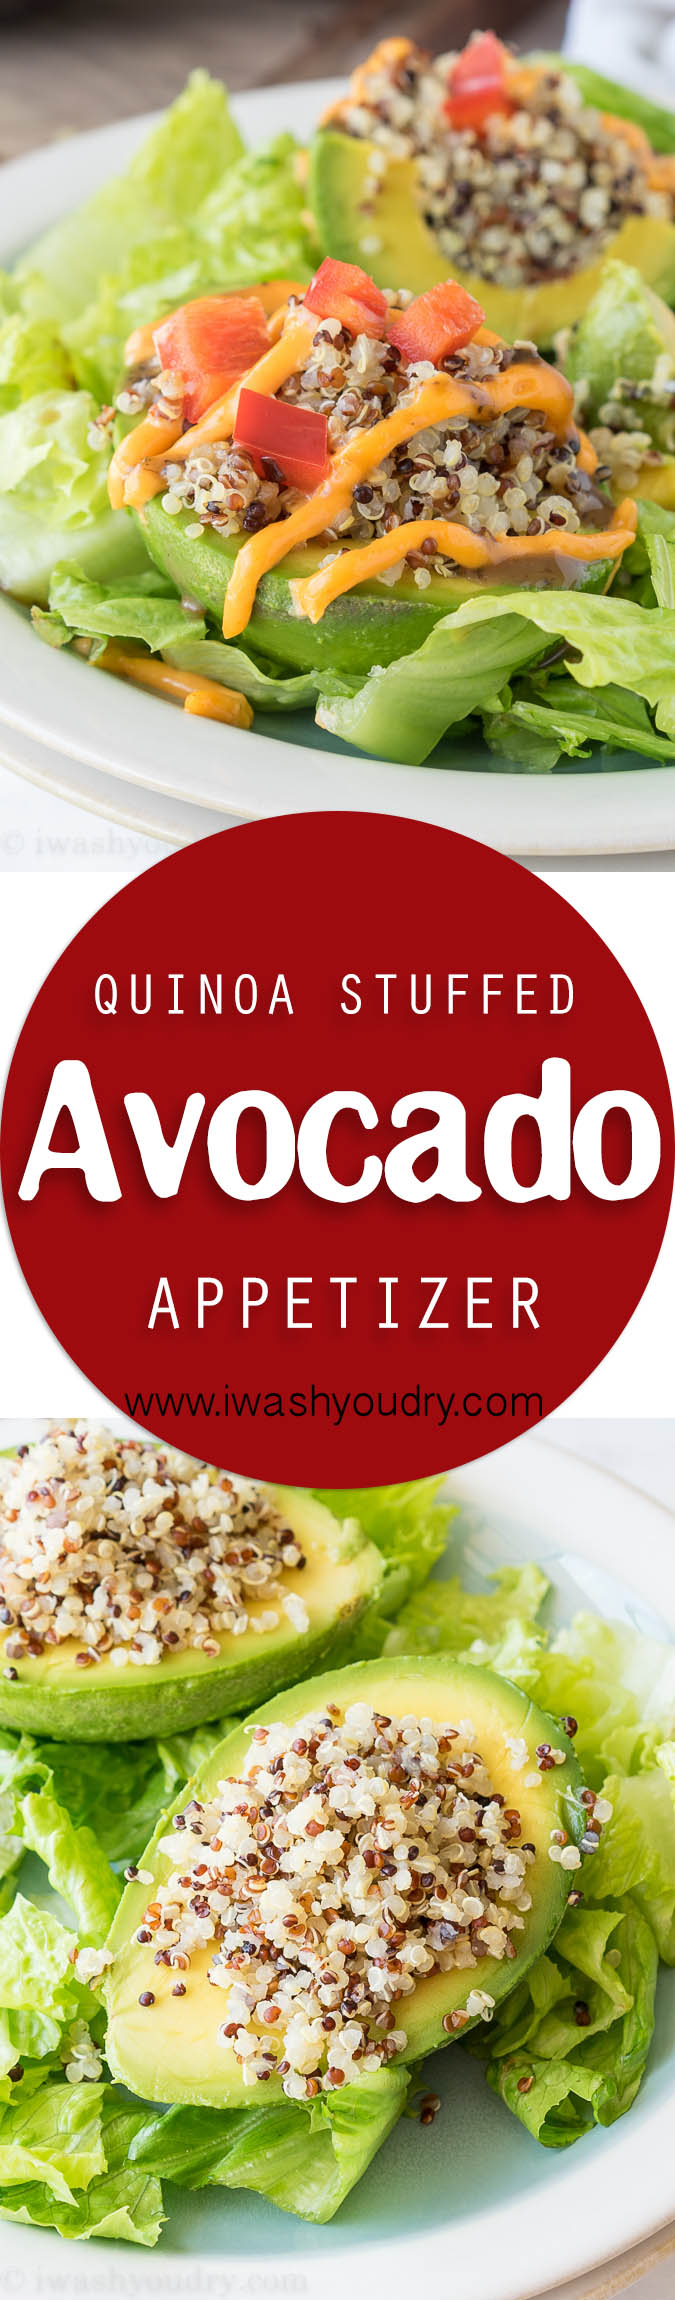 A couple weeks ago my husband and I went to lunch at a new place in town called Viva Chicken. It's a Peruvian restaurant that serves mainly chicken recipes, but also some killer wraps, salads and tasty appetizers like yucca fries and stuffed avocados. That's when I first tried their quinoa stuffed avocado and I was instantly hooked.